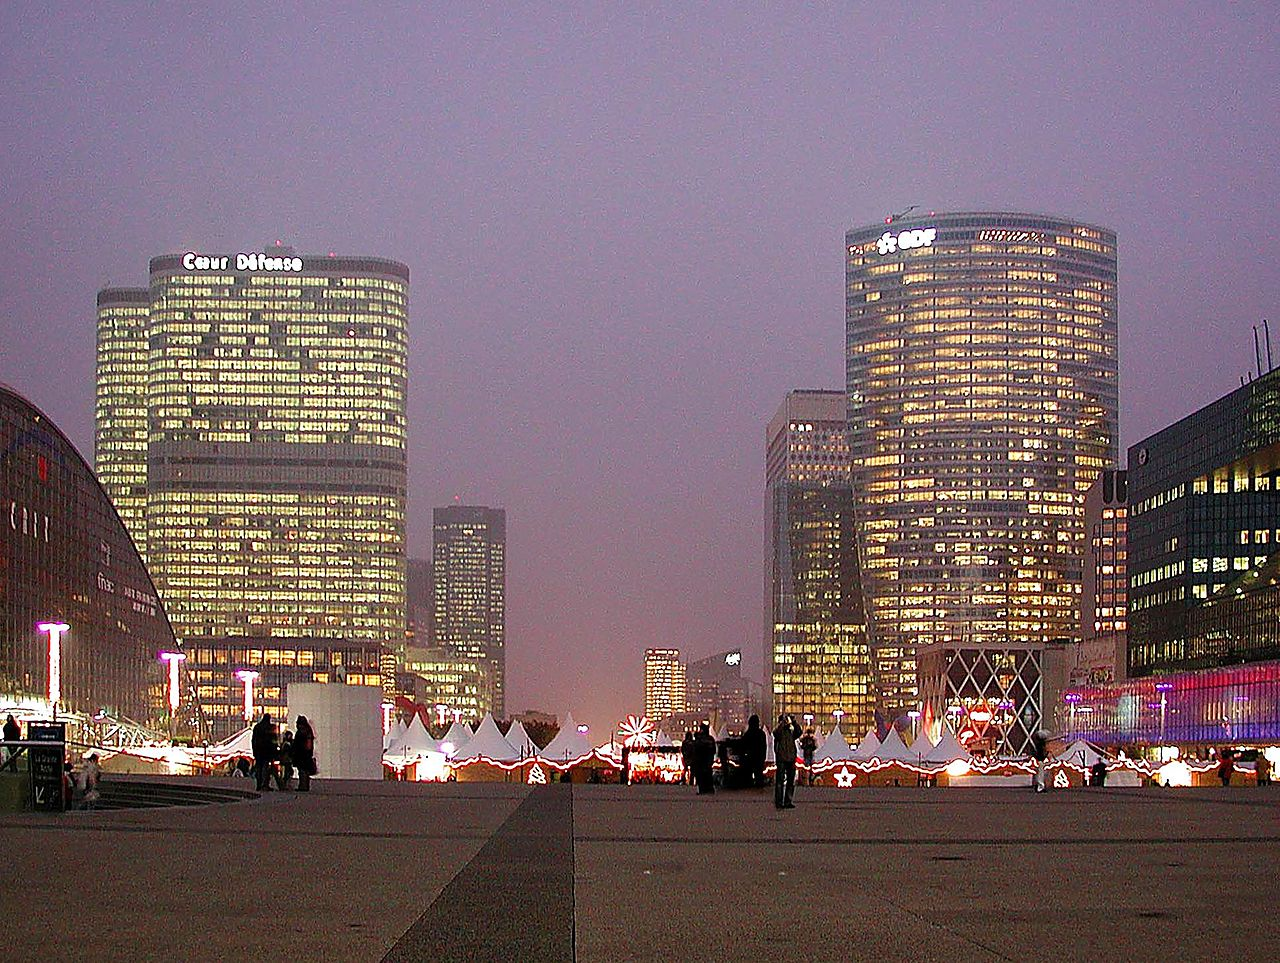 La Defense a Parigi in Ile-de-France - Francia